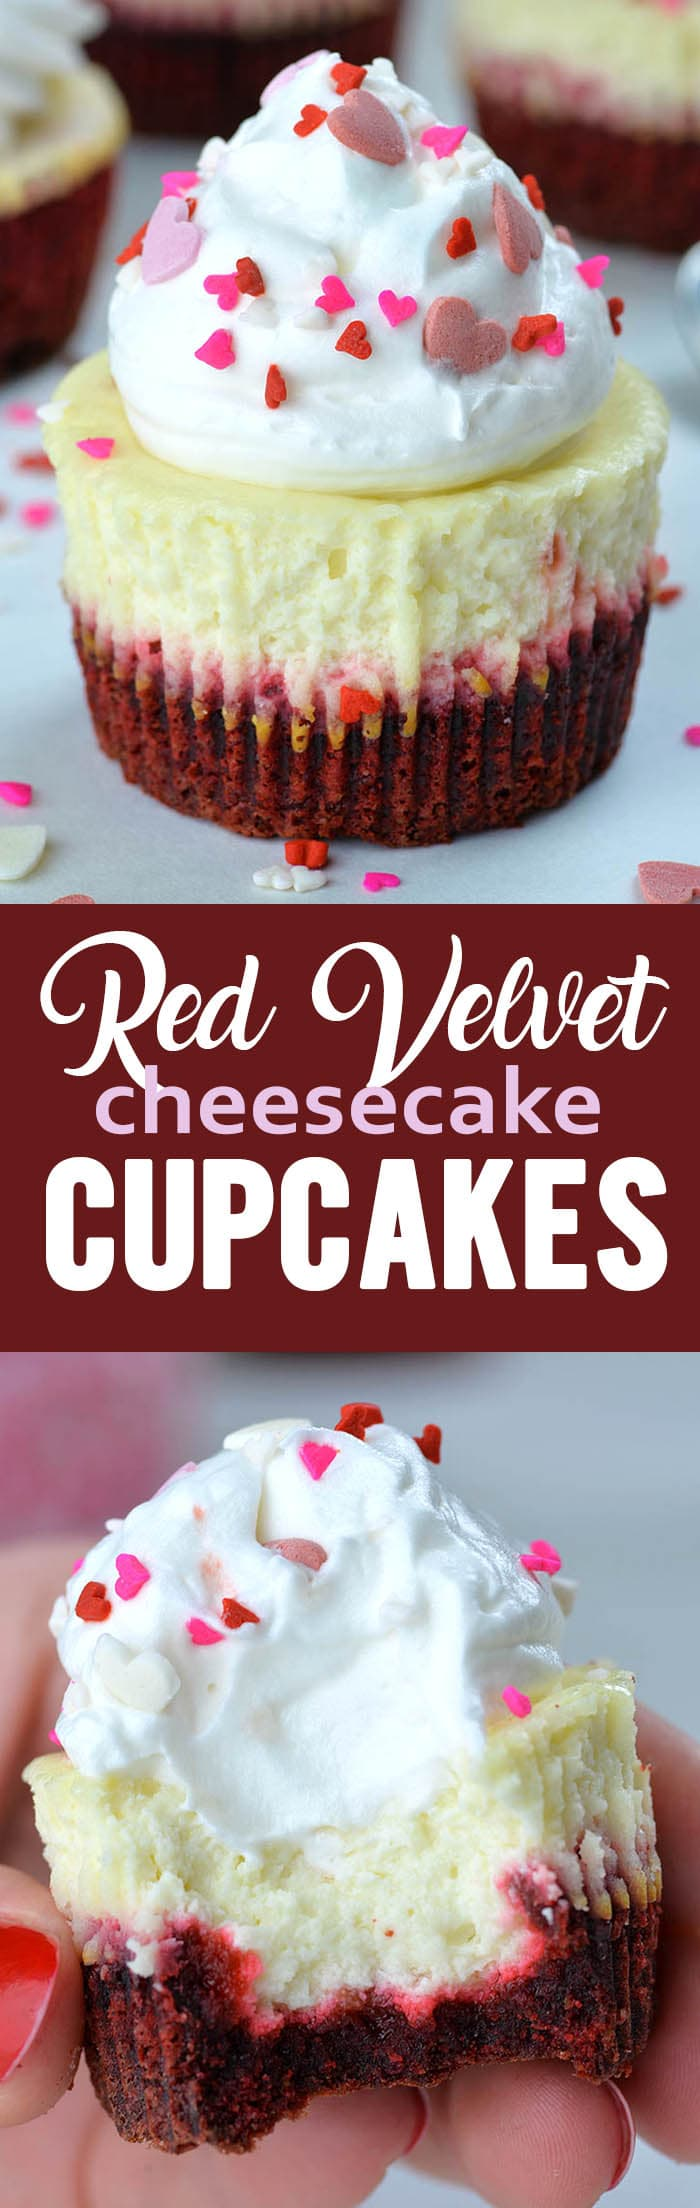 Red Velvet Cheesecake Cupcakes Omg Chocolate Desserts